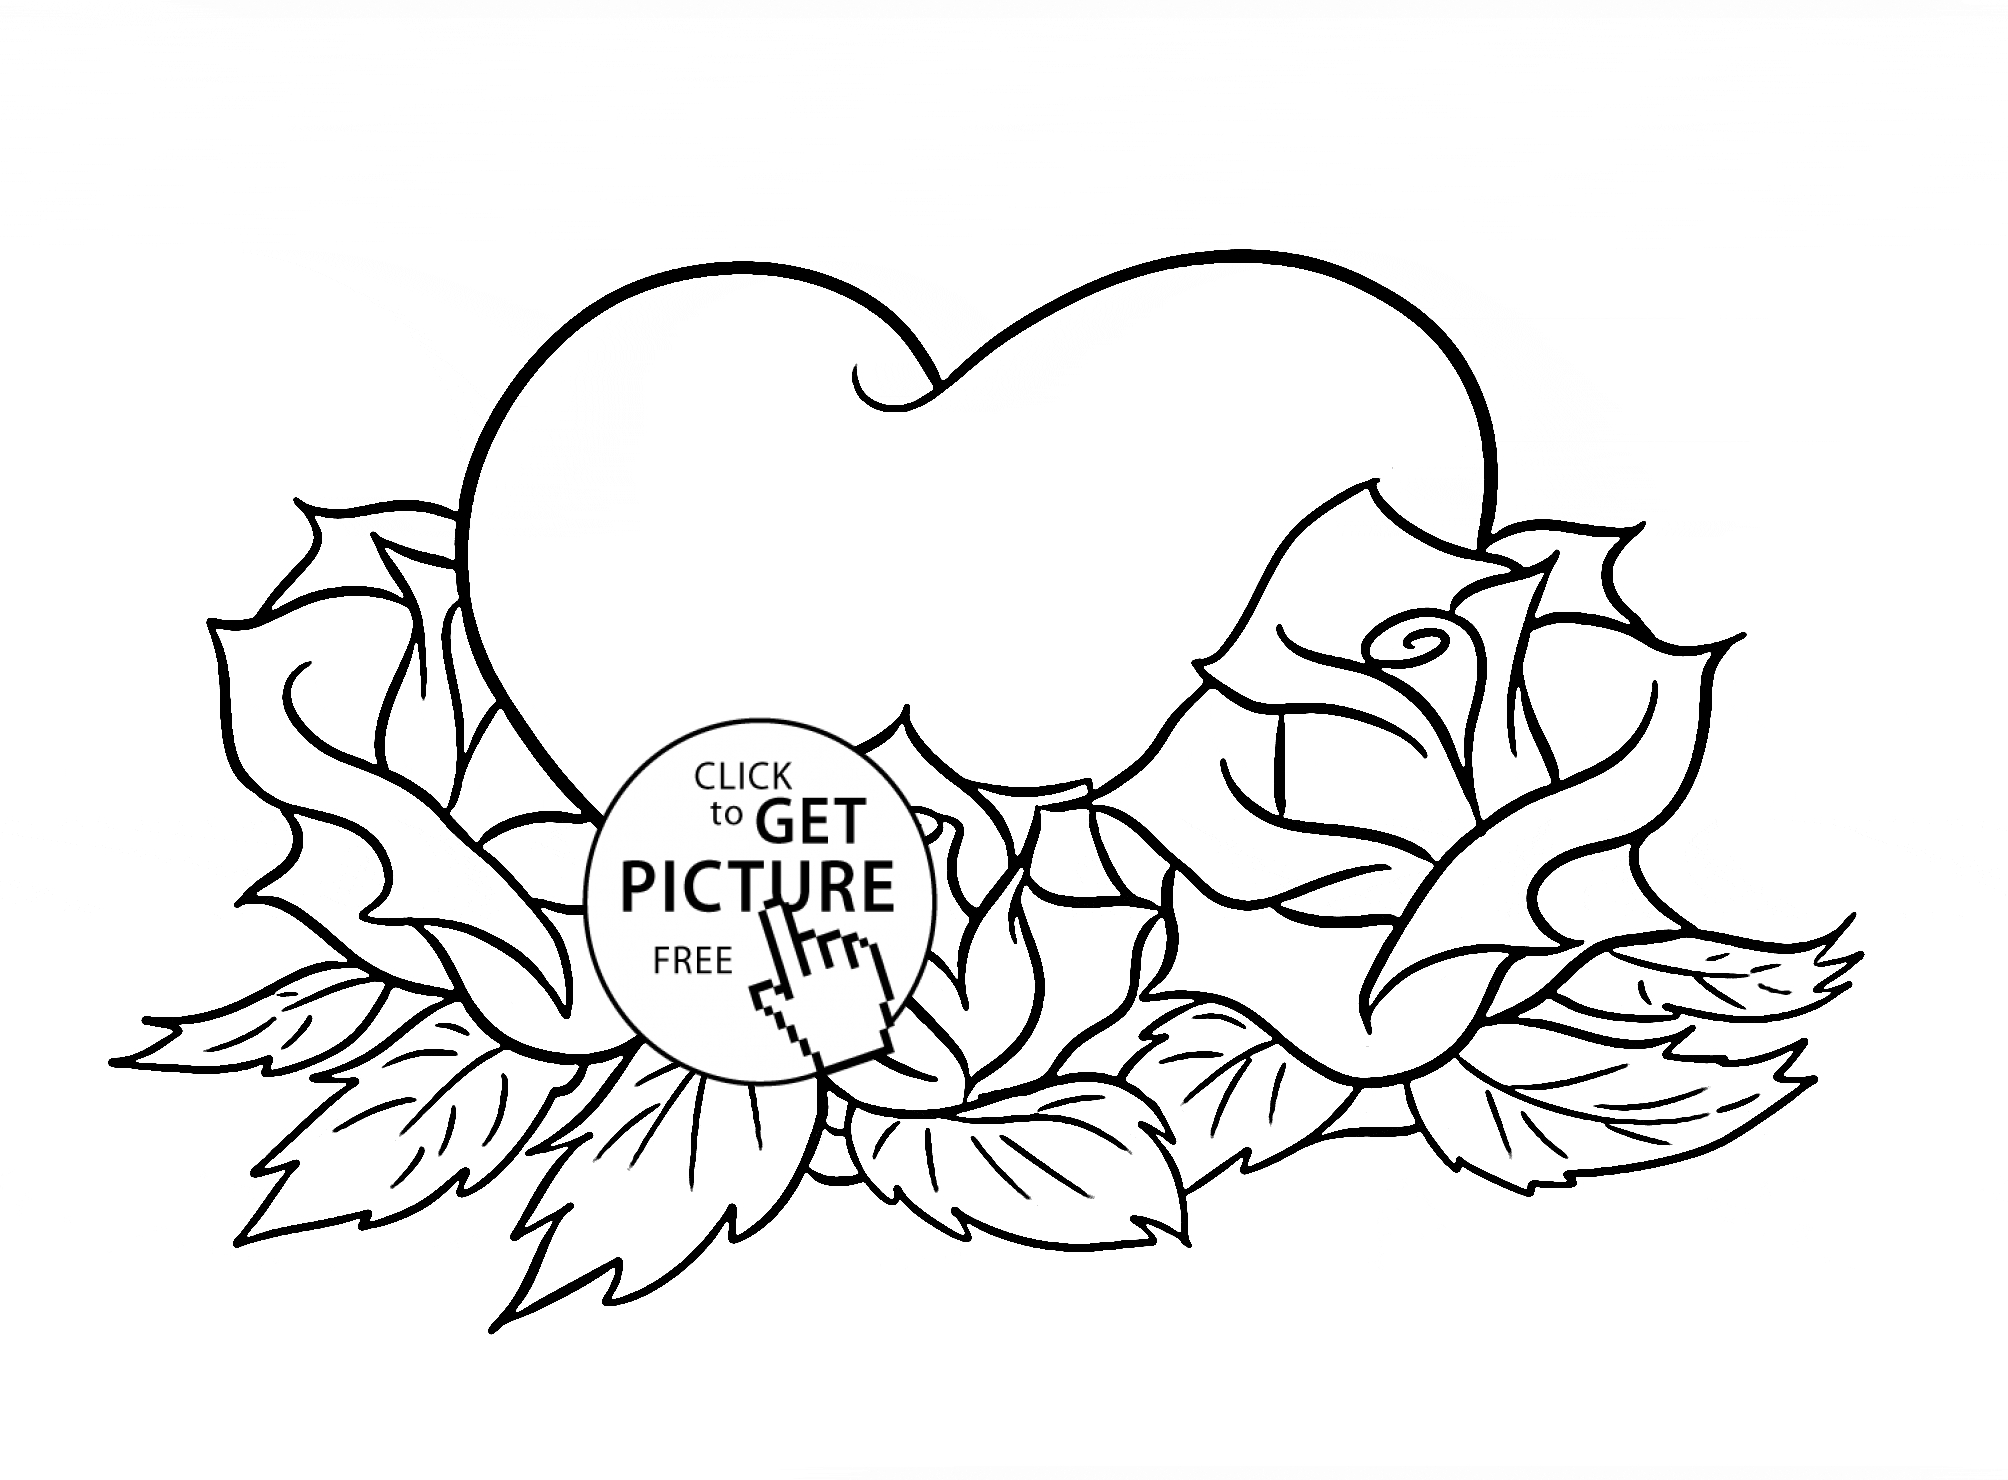 Roses And Hearts Coloring Pages 21 Coloring Pages Of Hearts And Flowers Printable Free Coloring